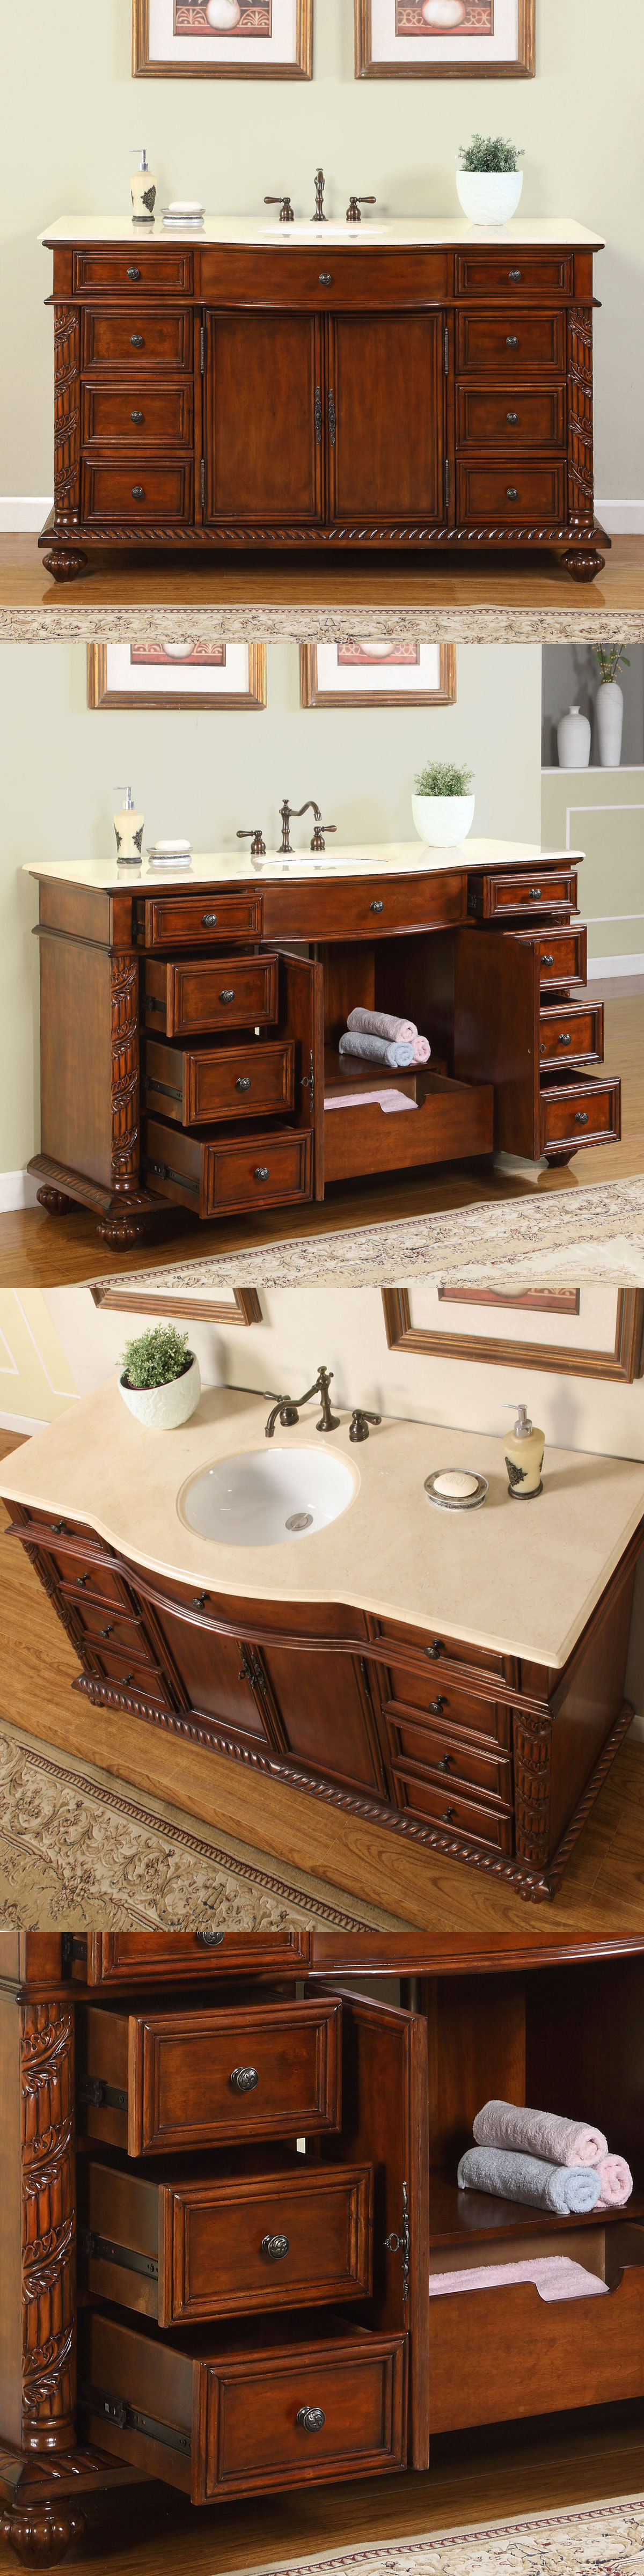 Pictures In Gallery Vanities Cm Single Bathroom Vanity Cabinet White Sink And Marble Stone Top